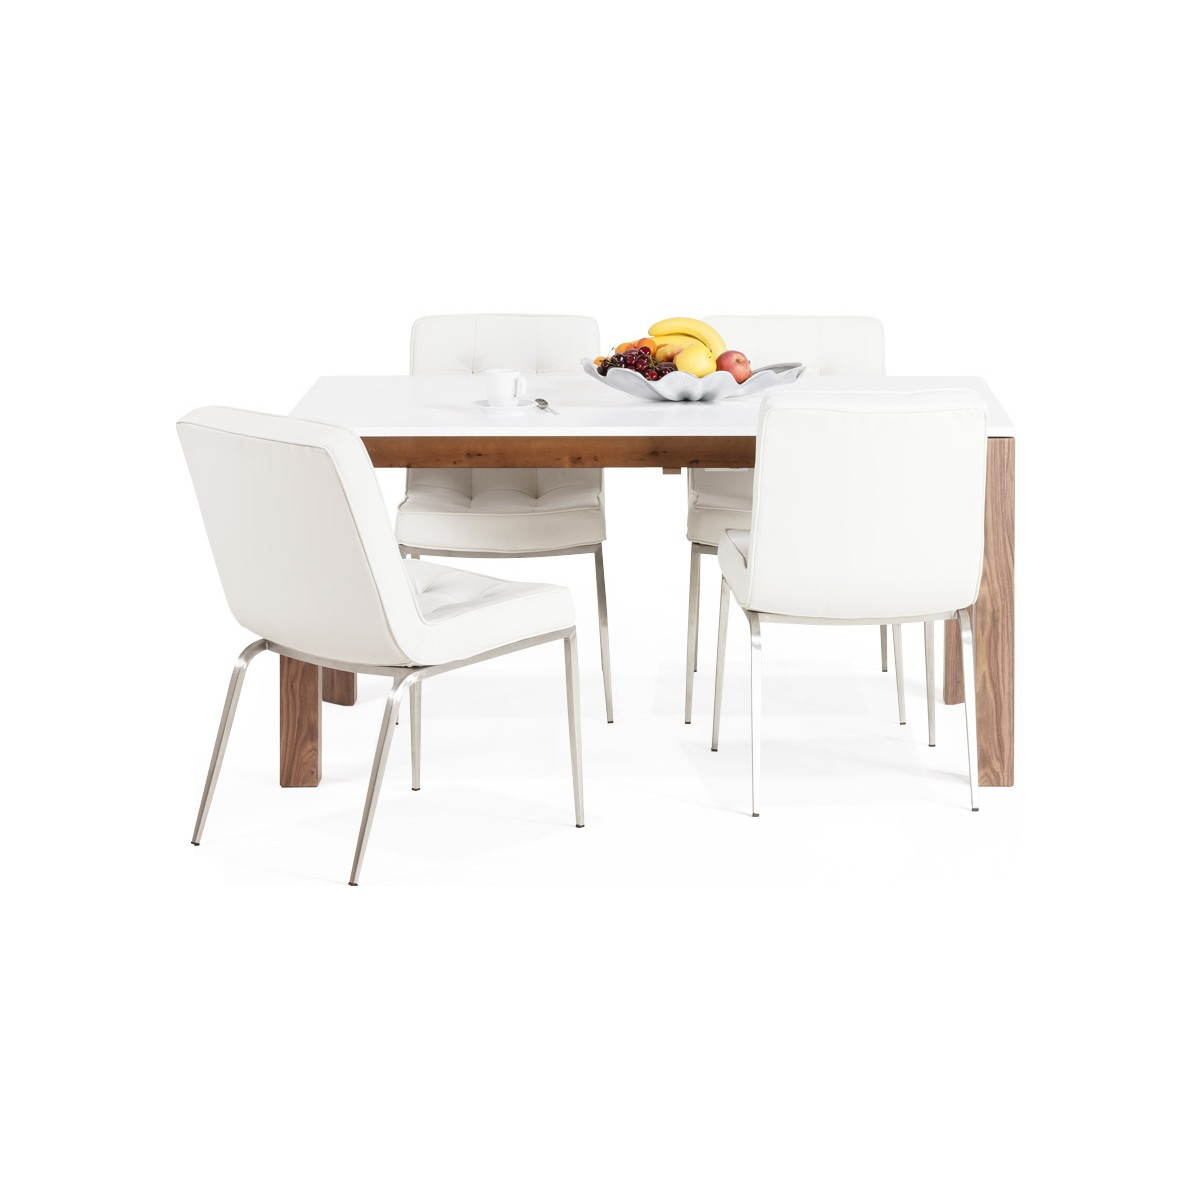 Table design rectangulaire avec rallonge loulou en bois blanc english eng - Table ronde bois blanc ...